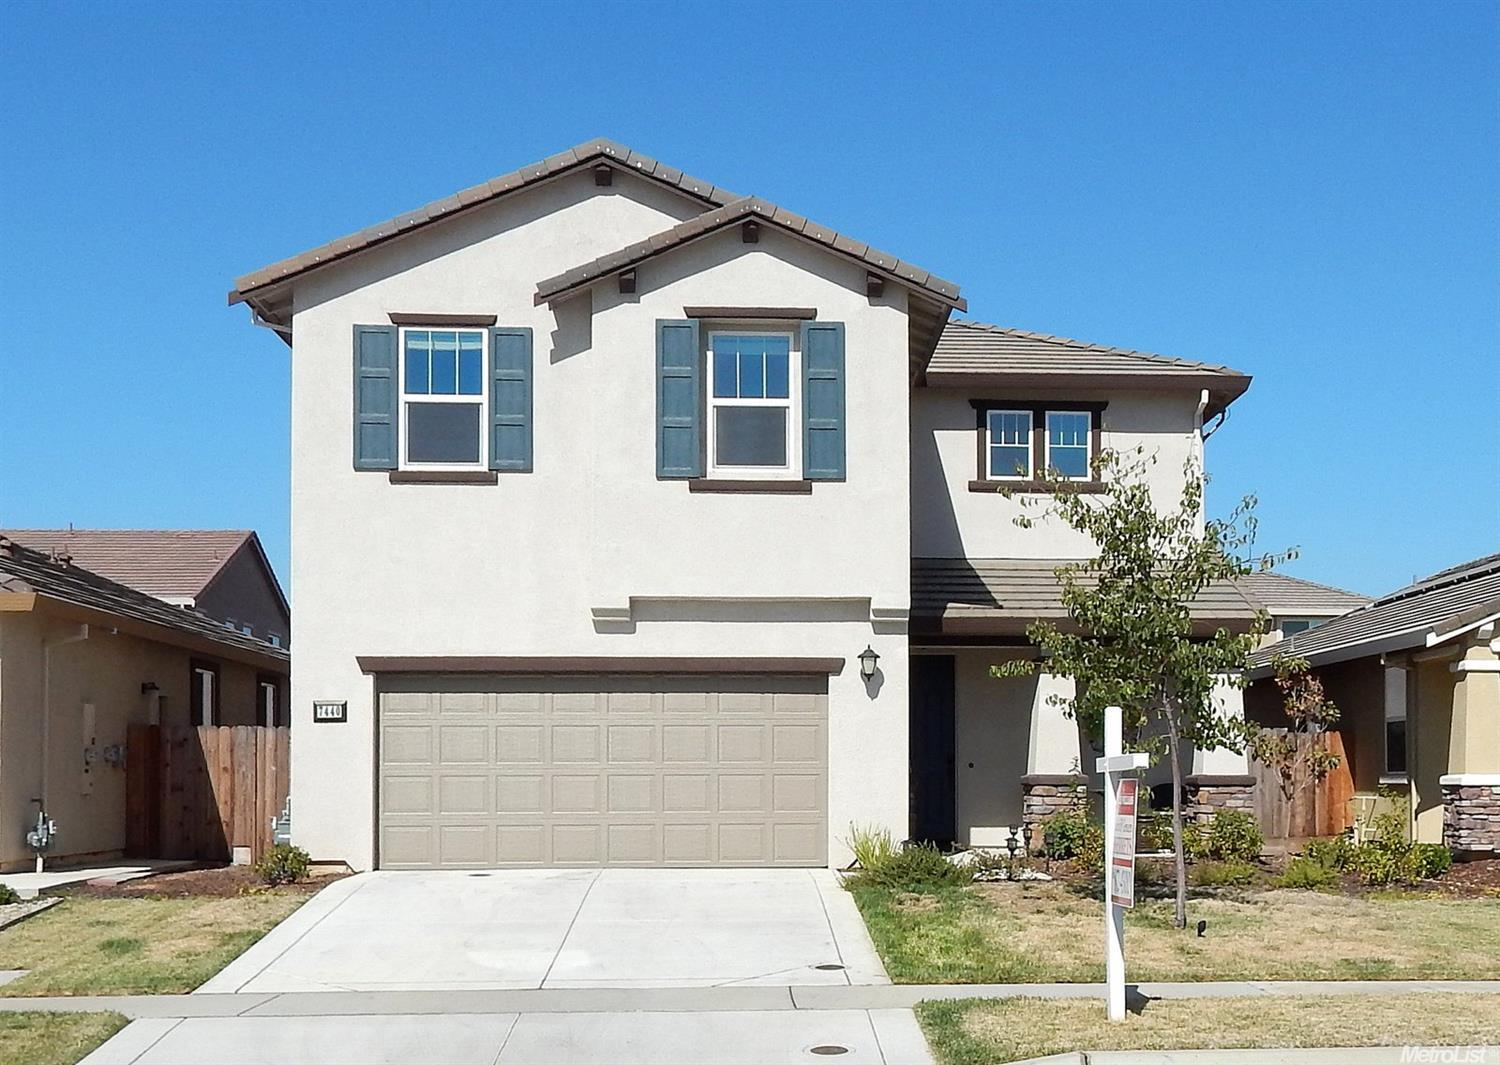 7440 Morning Hills St, Sacramento, CA 95829